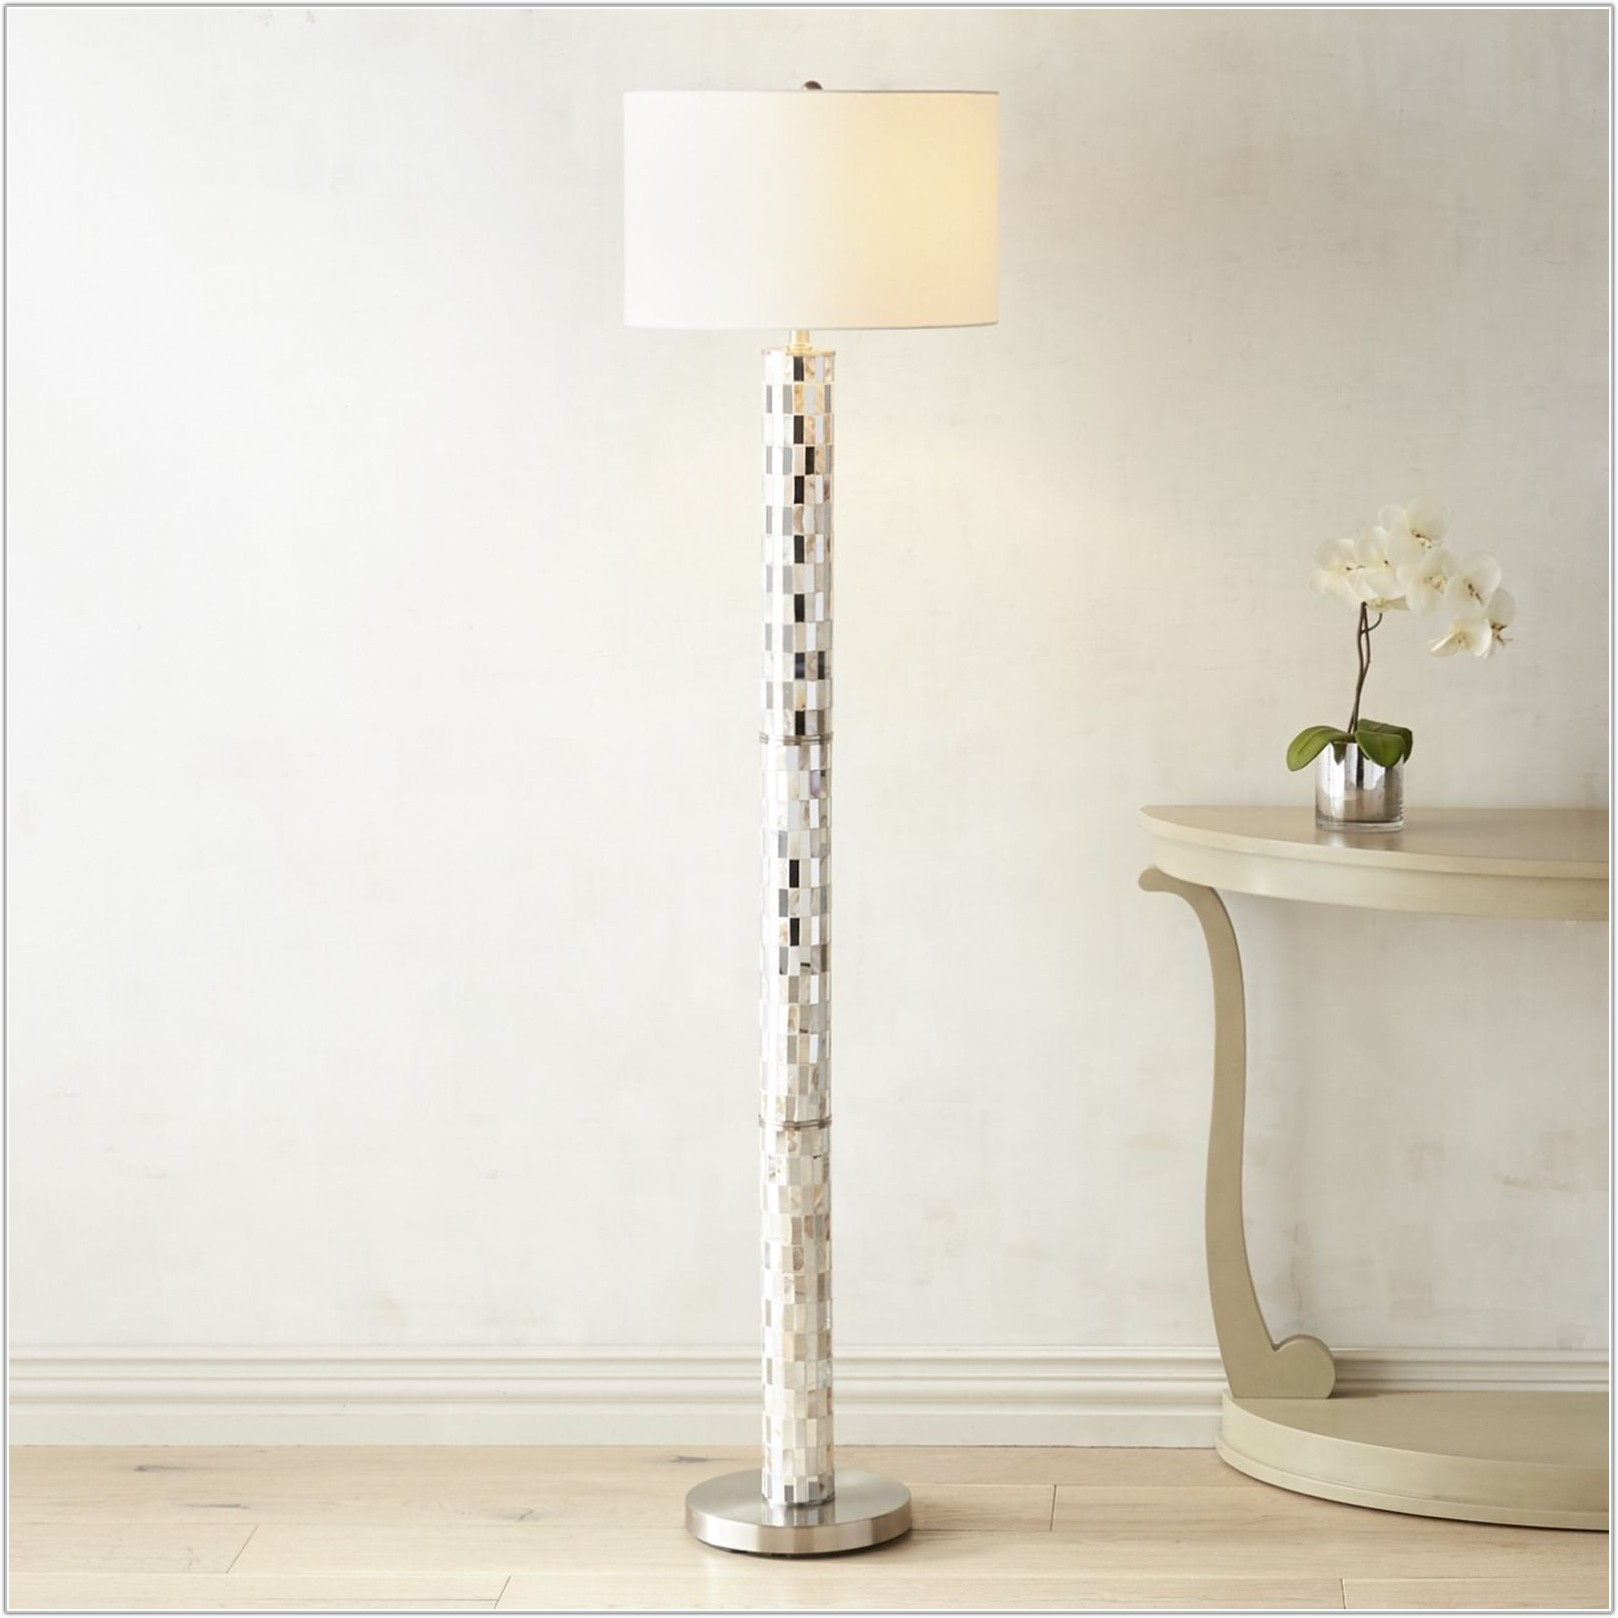 Pier 1 Mother Of Pearl Floor Lamp